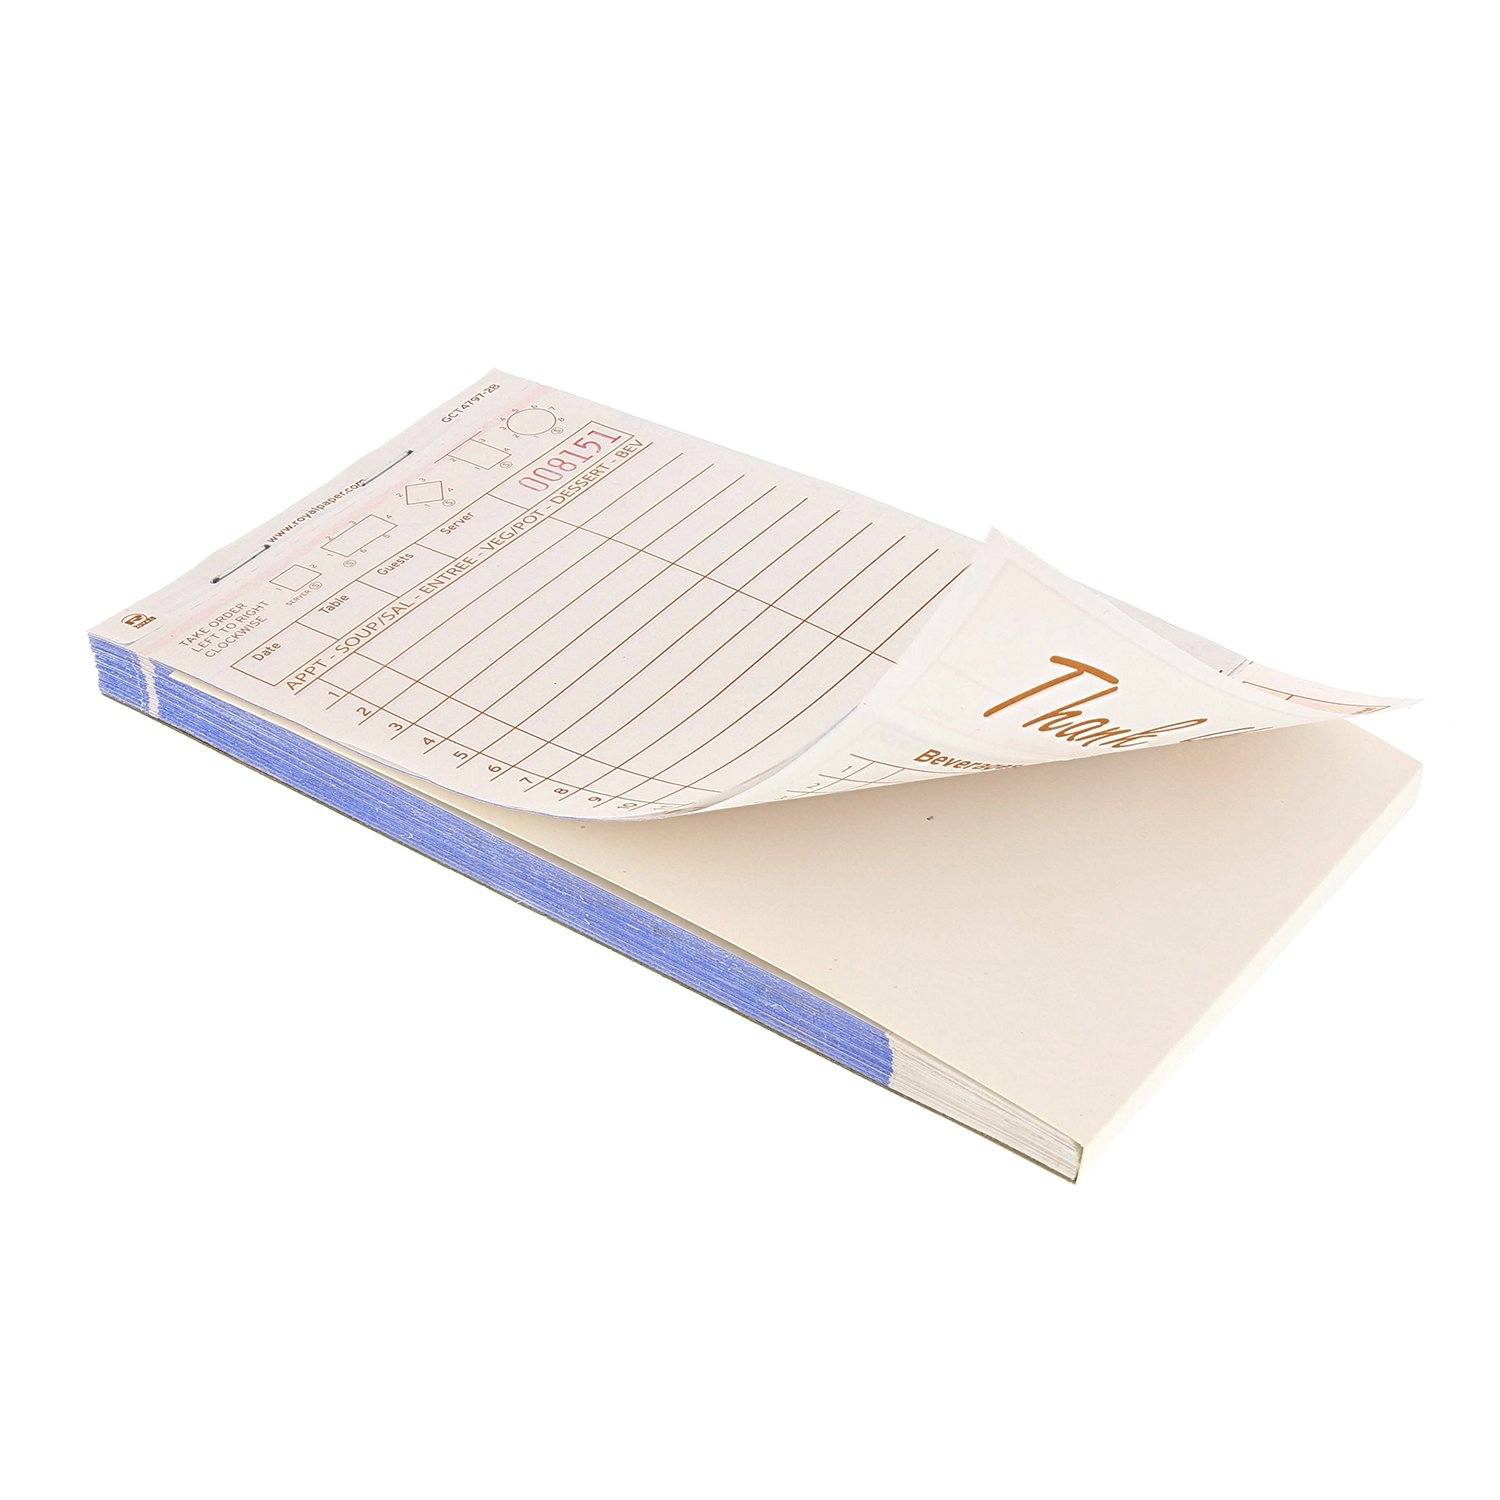 Royal Tan Guest Check Board, Carbonless 2 Part Booked, Case of 40 Books